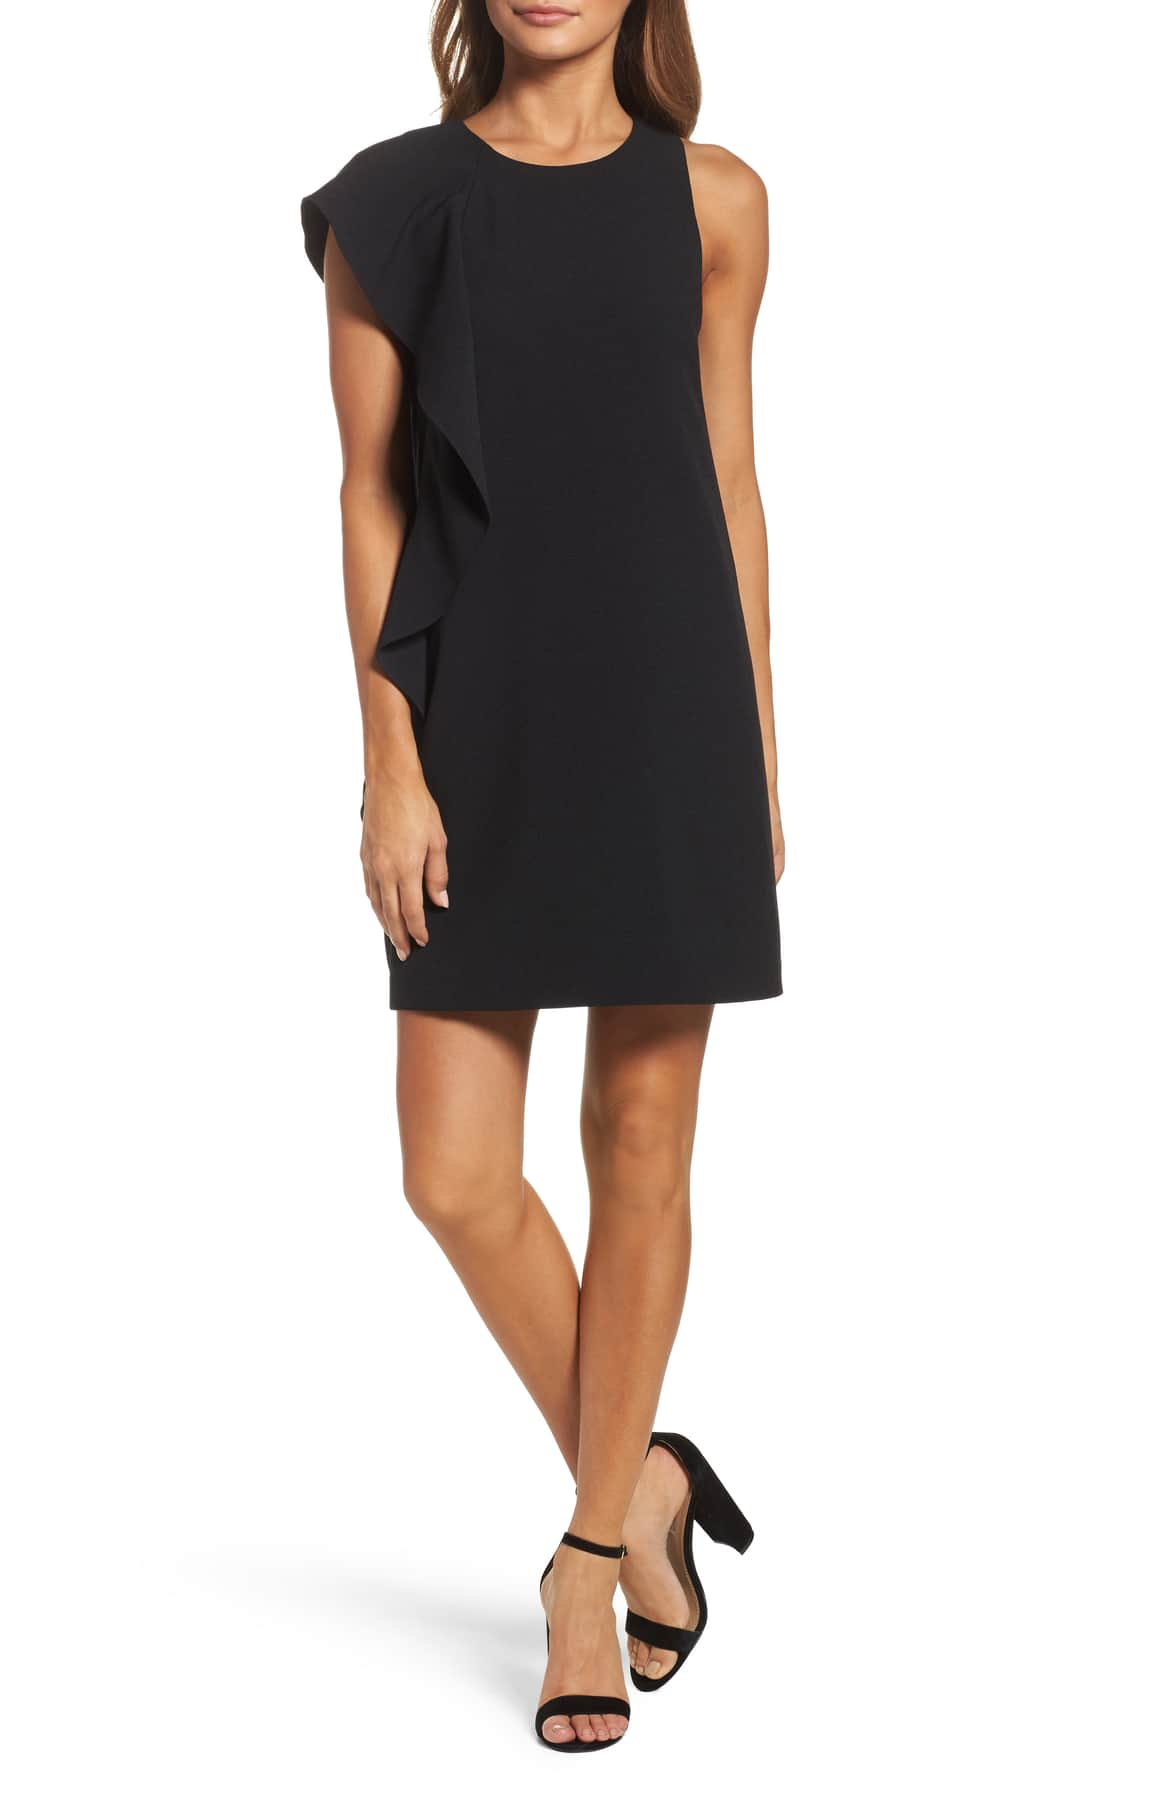 Shop This Ruffle Shift Dress On Sale At Nordstrom